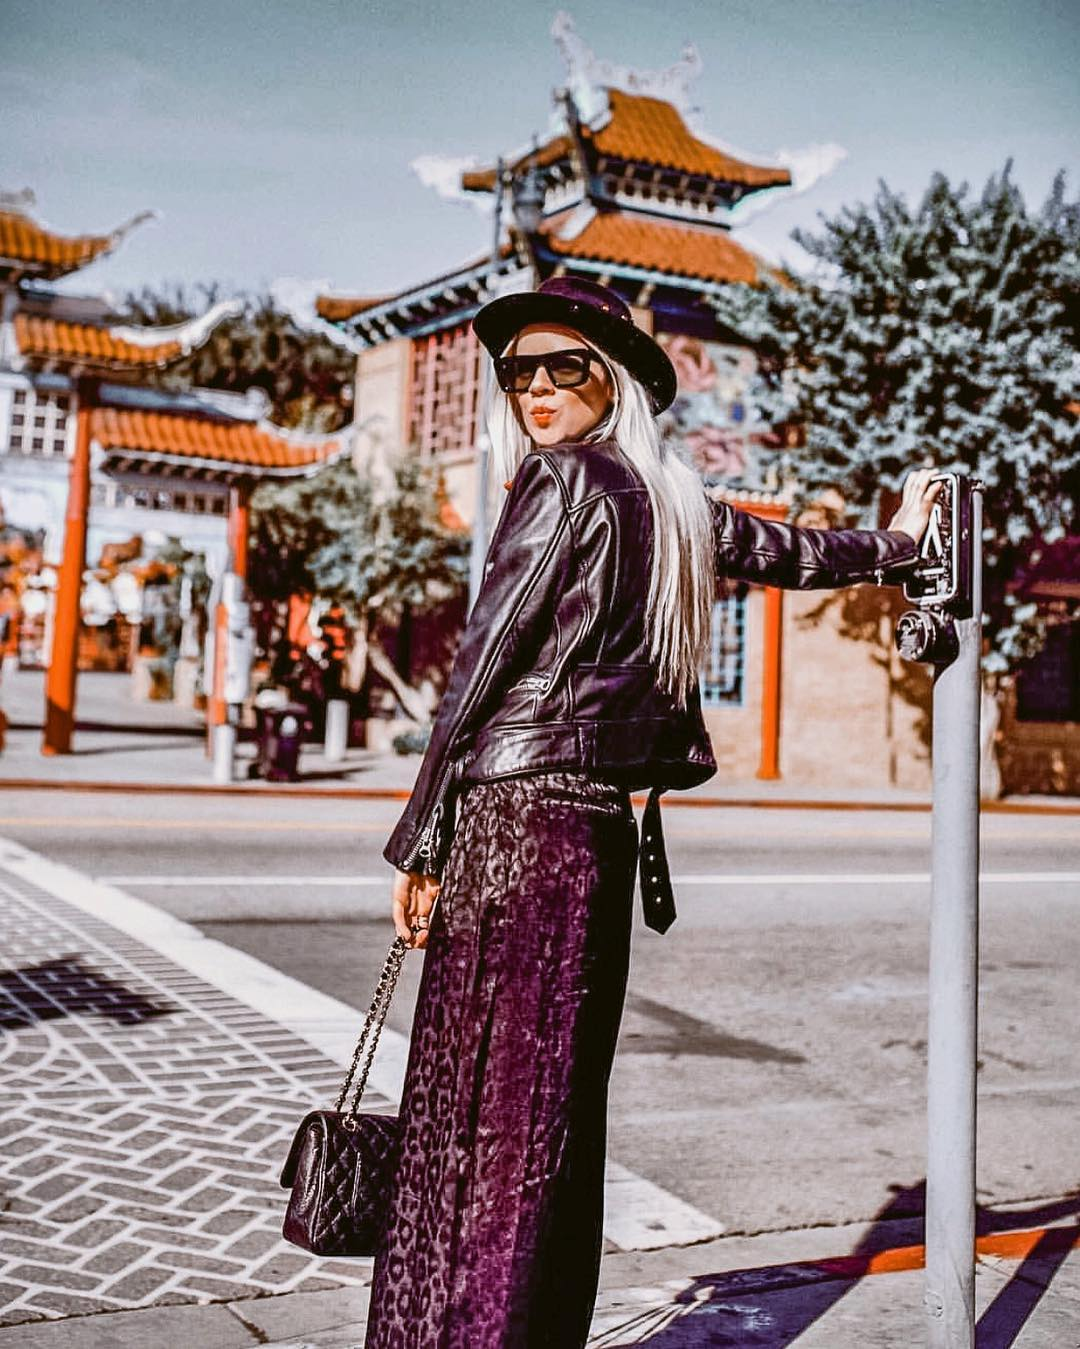 Bohemian Fall OOTD: maxi skirt and leather jacket 2021